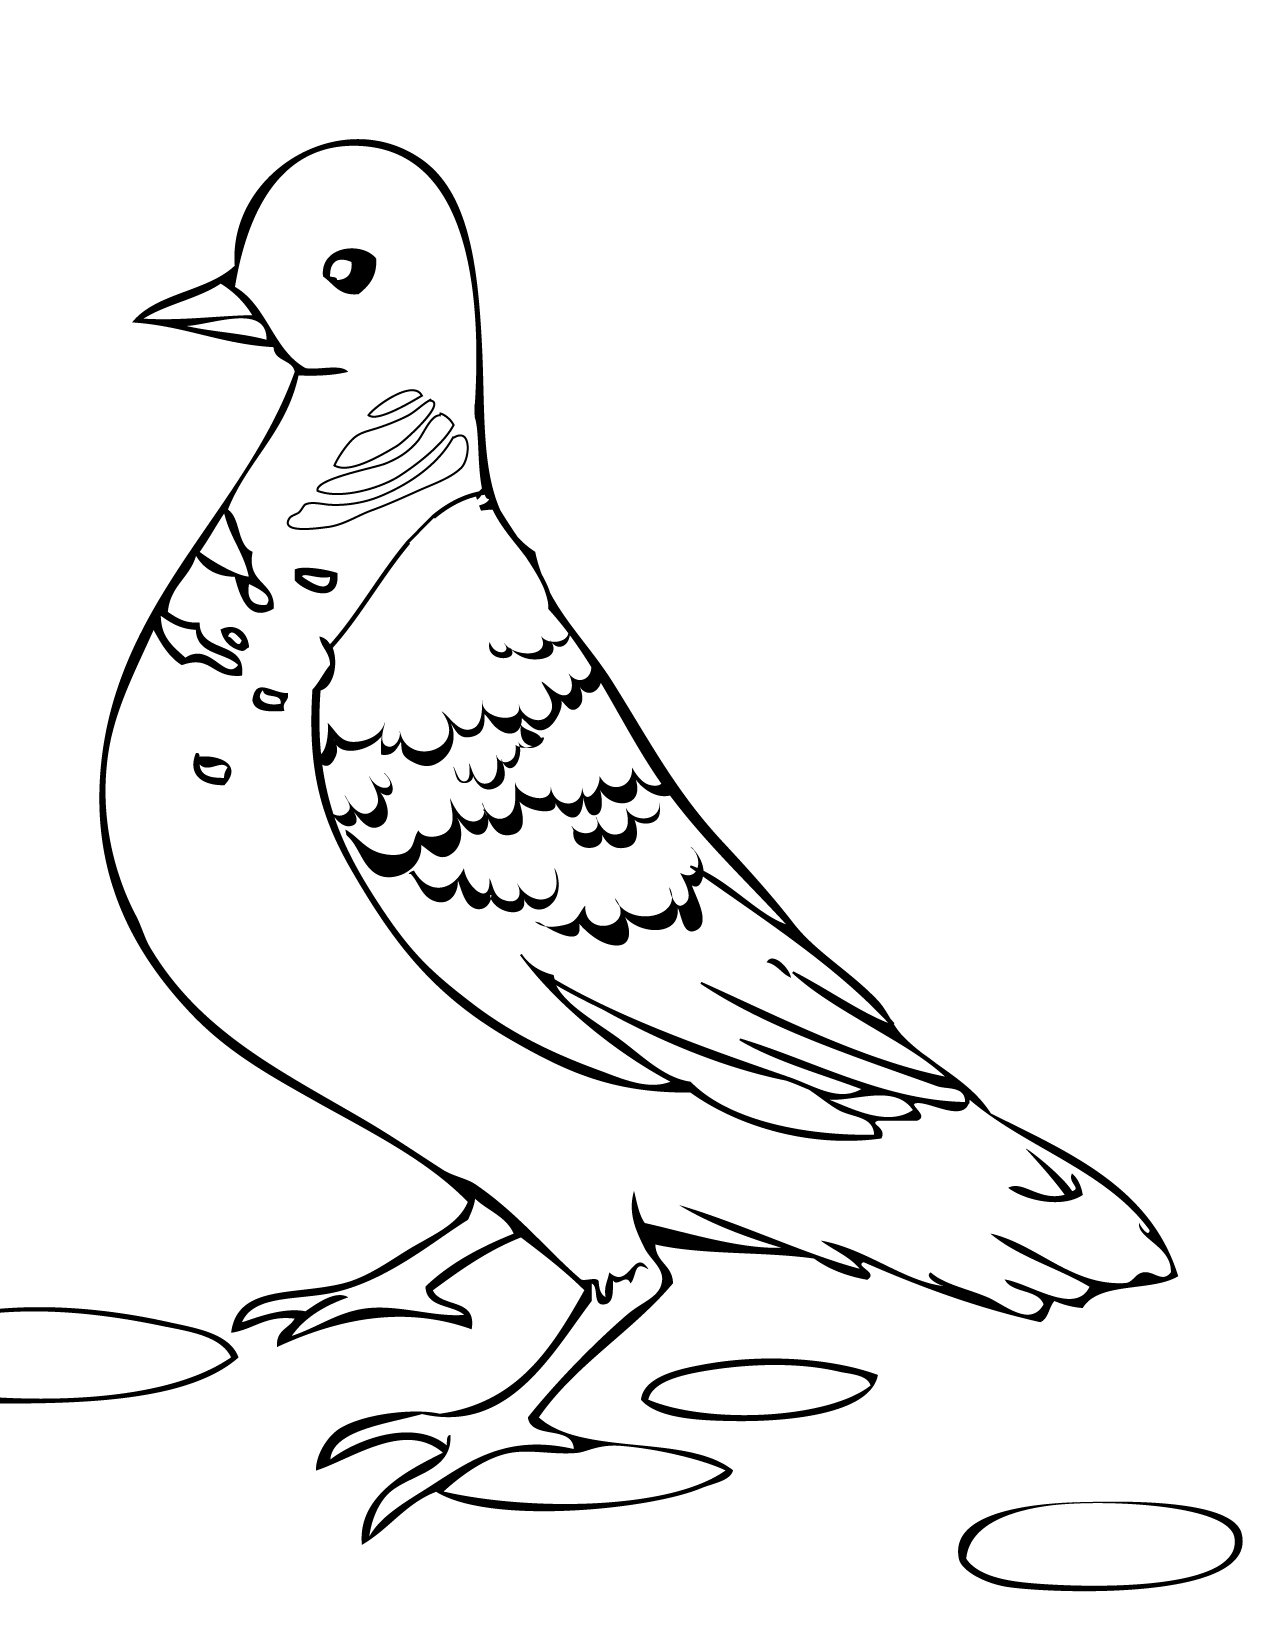 turtle dove template two turtle doves drawing free download on clipartmag dove turtle template 1 1